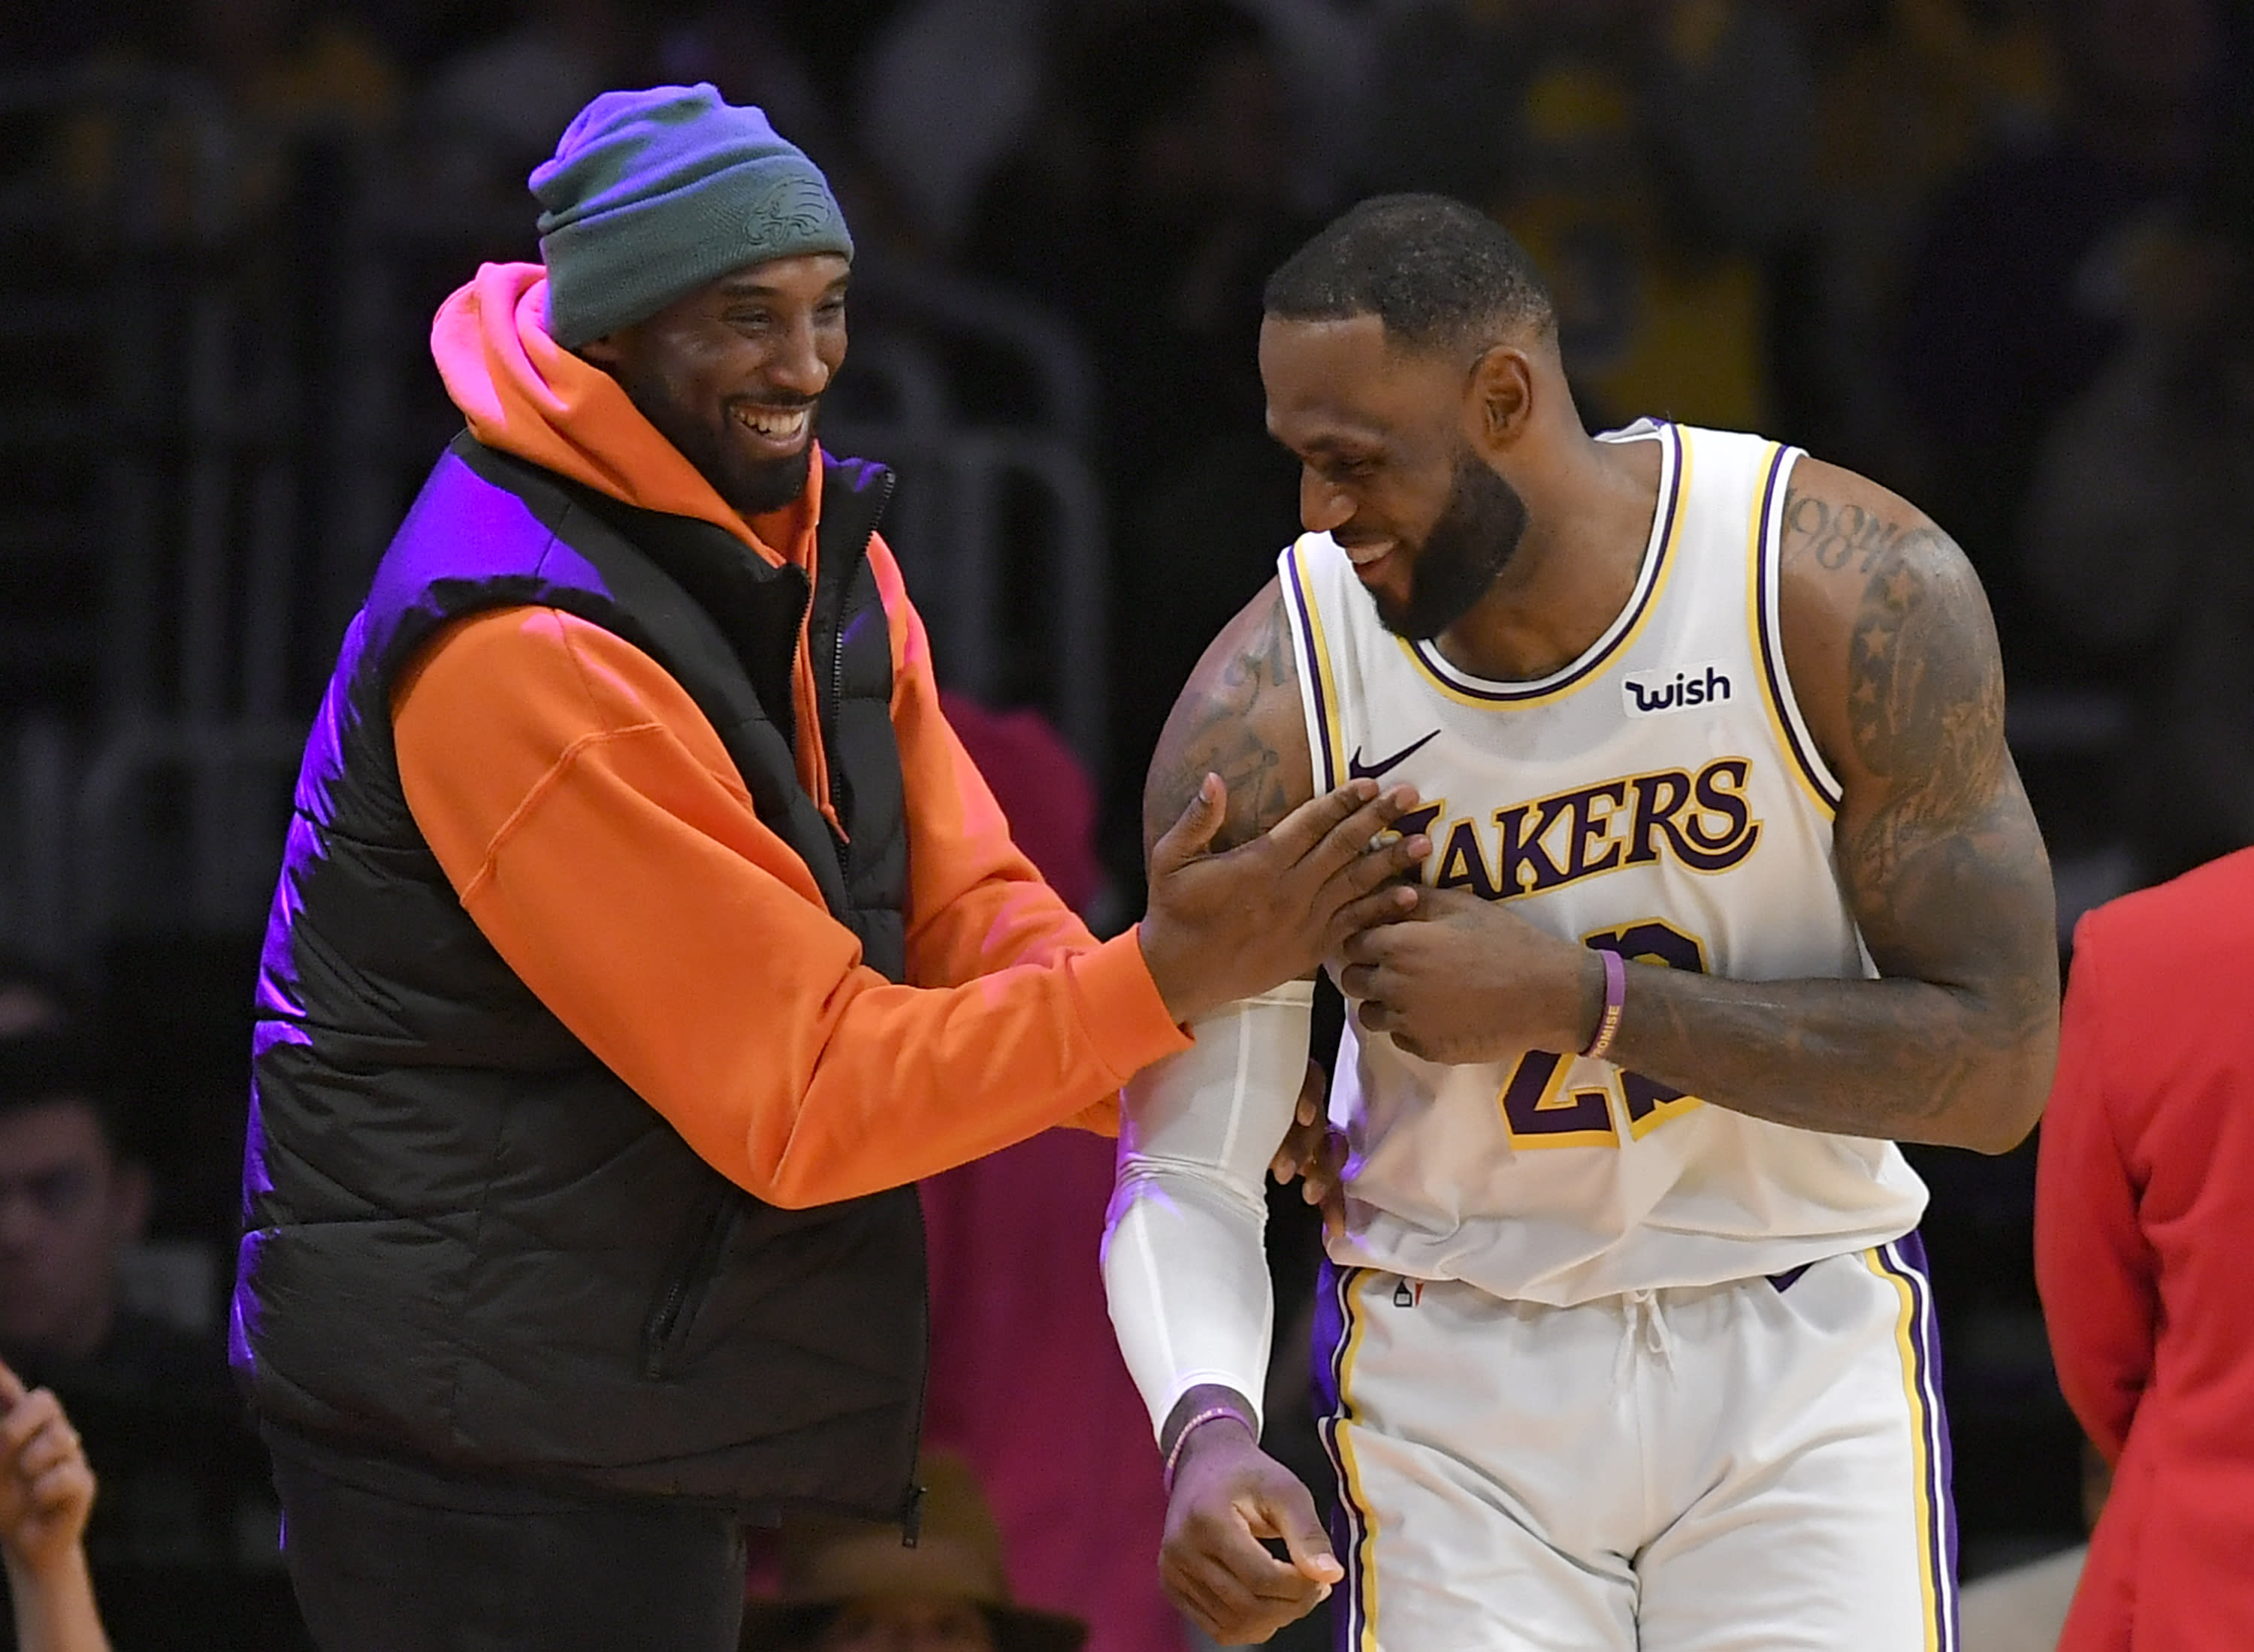 LOS ANGELES, CA - DECEMBER 29: LeBron James #23 of the Los Angeles Lakers has a moment on the sideline with former Laker Kobe Bryant in the second half during a game against the Dallas Mavericks at Staples Center on December 29, 2019 in Los Angeles, California. NOTE TO USER: User expressly acknowledges and agrees that, by downloading and/or using this photograph, user is consenting to the terms and conditions of the Getty Images License Agreement. (Photo by John McCoy/Getty Images)